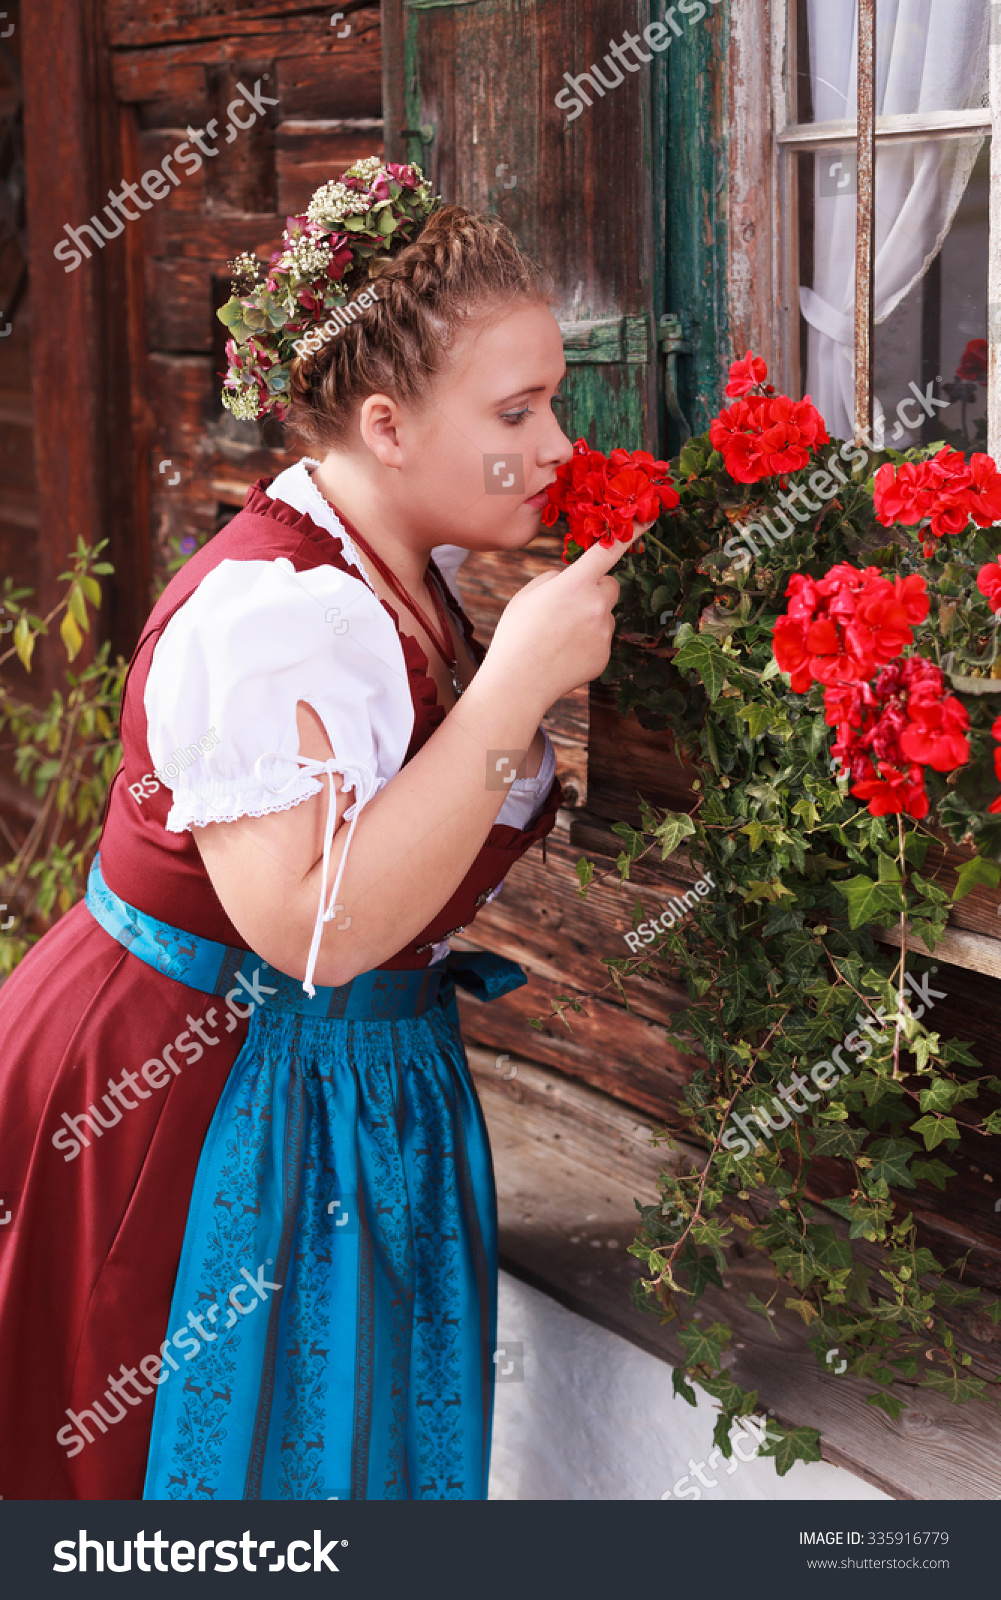 Young, Bavarian, chubby girl in red dirndl smelling a geranium in a flower  box